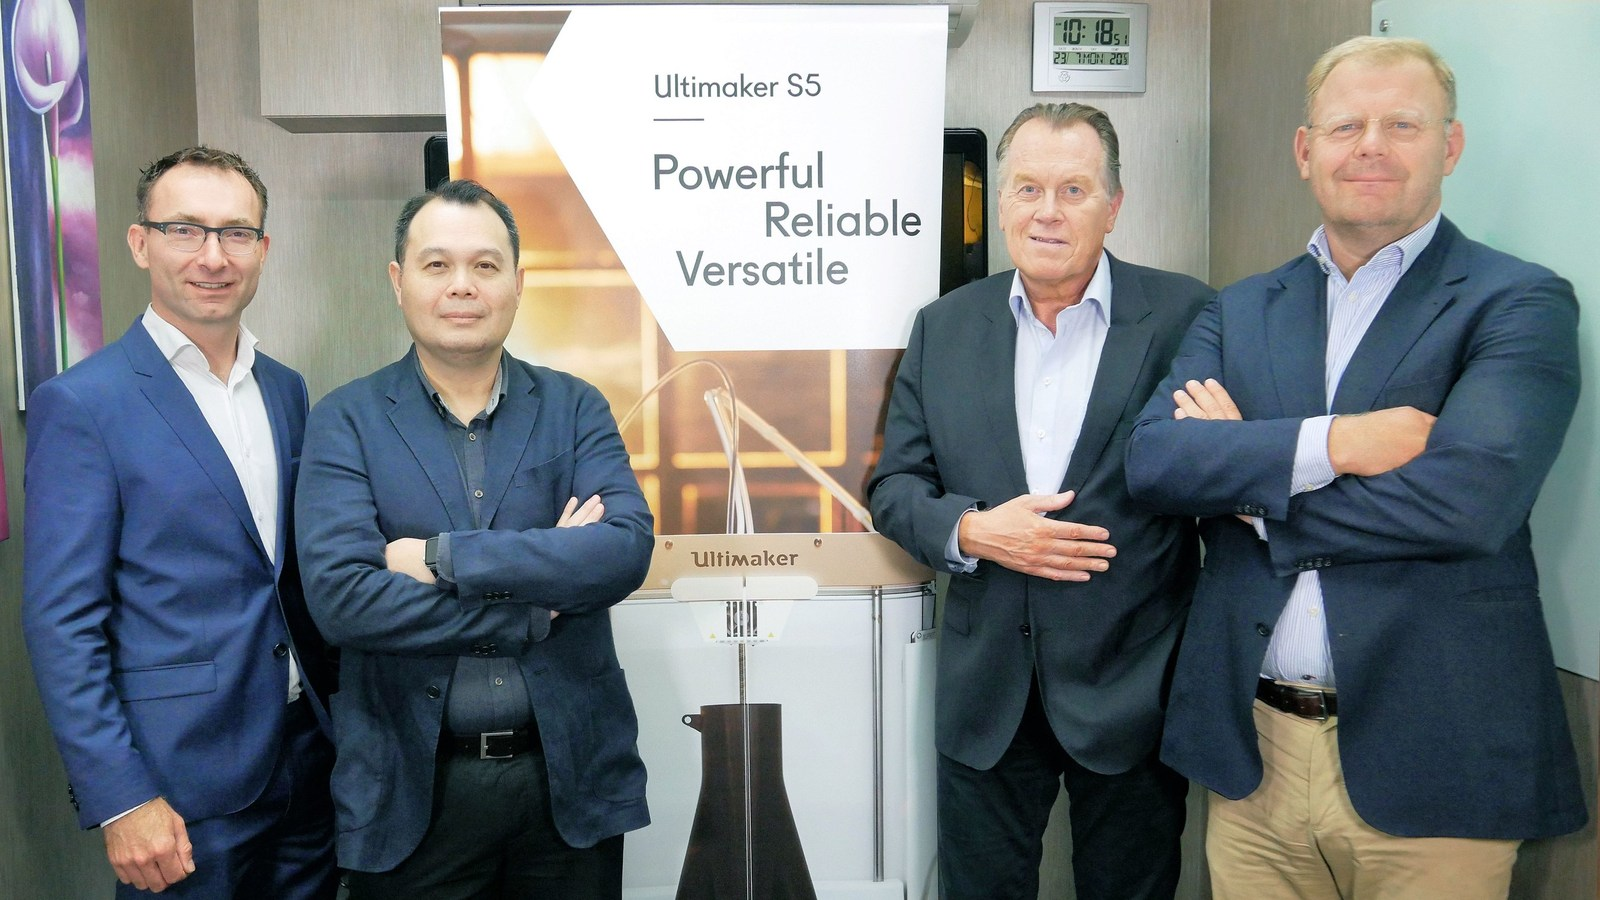 Opening Ultimaker's Singapore office (left to right): Siert Wijnia (CTO), Benjamin Tan (VP APAC), Jos Burger (CEO), Paul Heiden (SVP Product Management. Photo via Ultimaker.